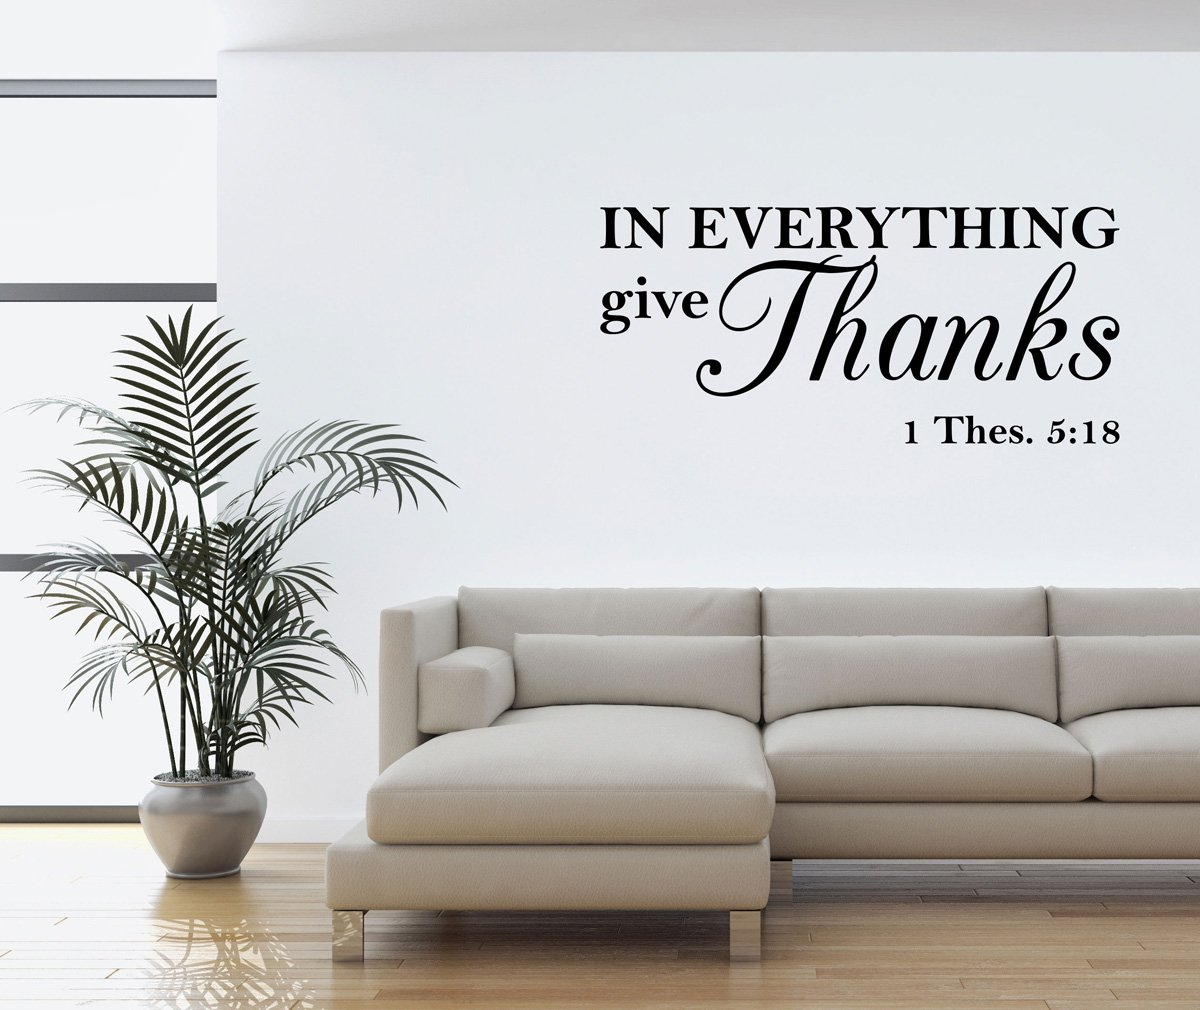 Wall Decal Quote in Everything Give Thanks Thessalonians Scripture Religious Wall Quotes Arts Sayings Bible Verse Vinyl Decals 6111053